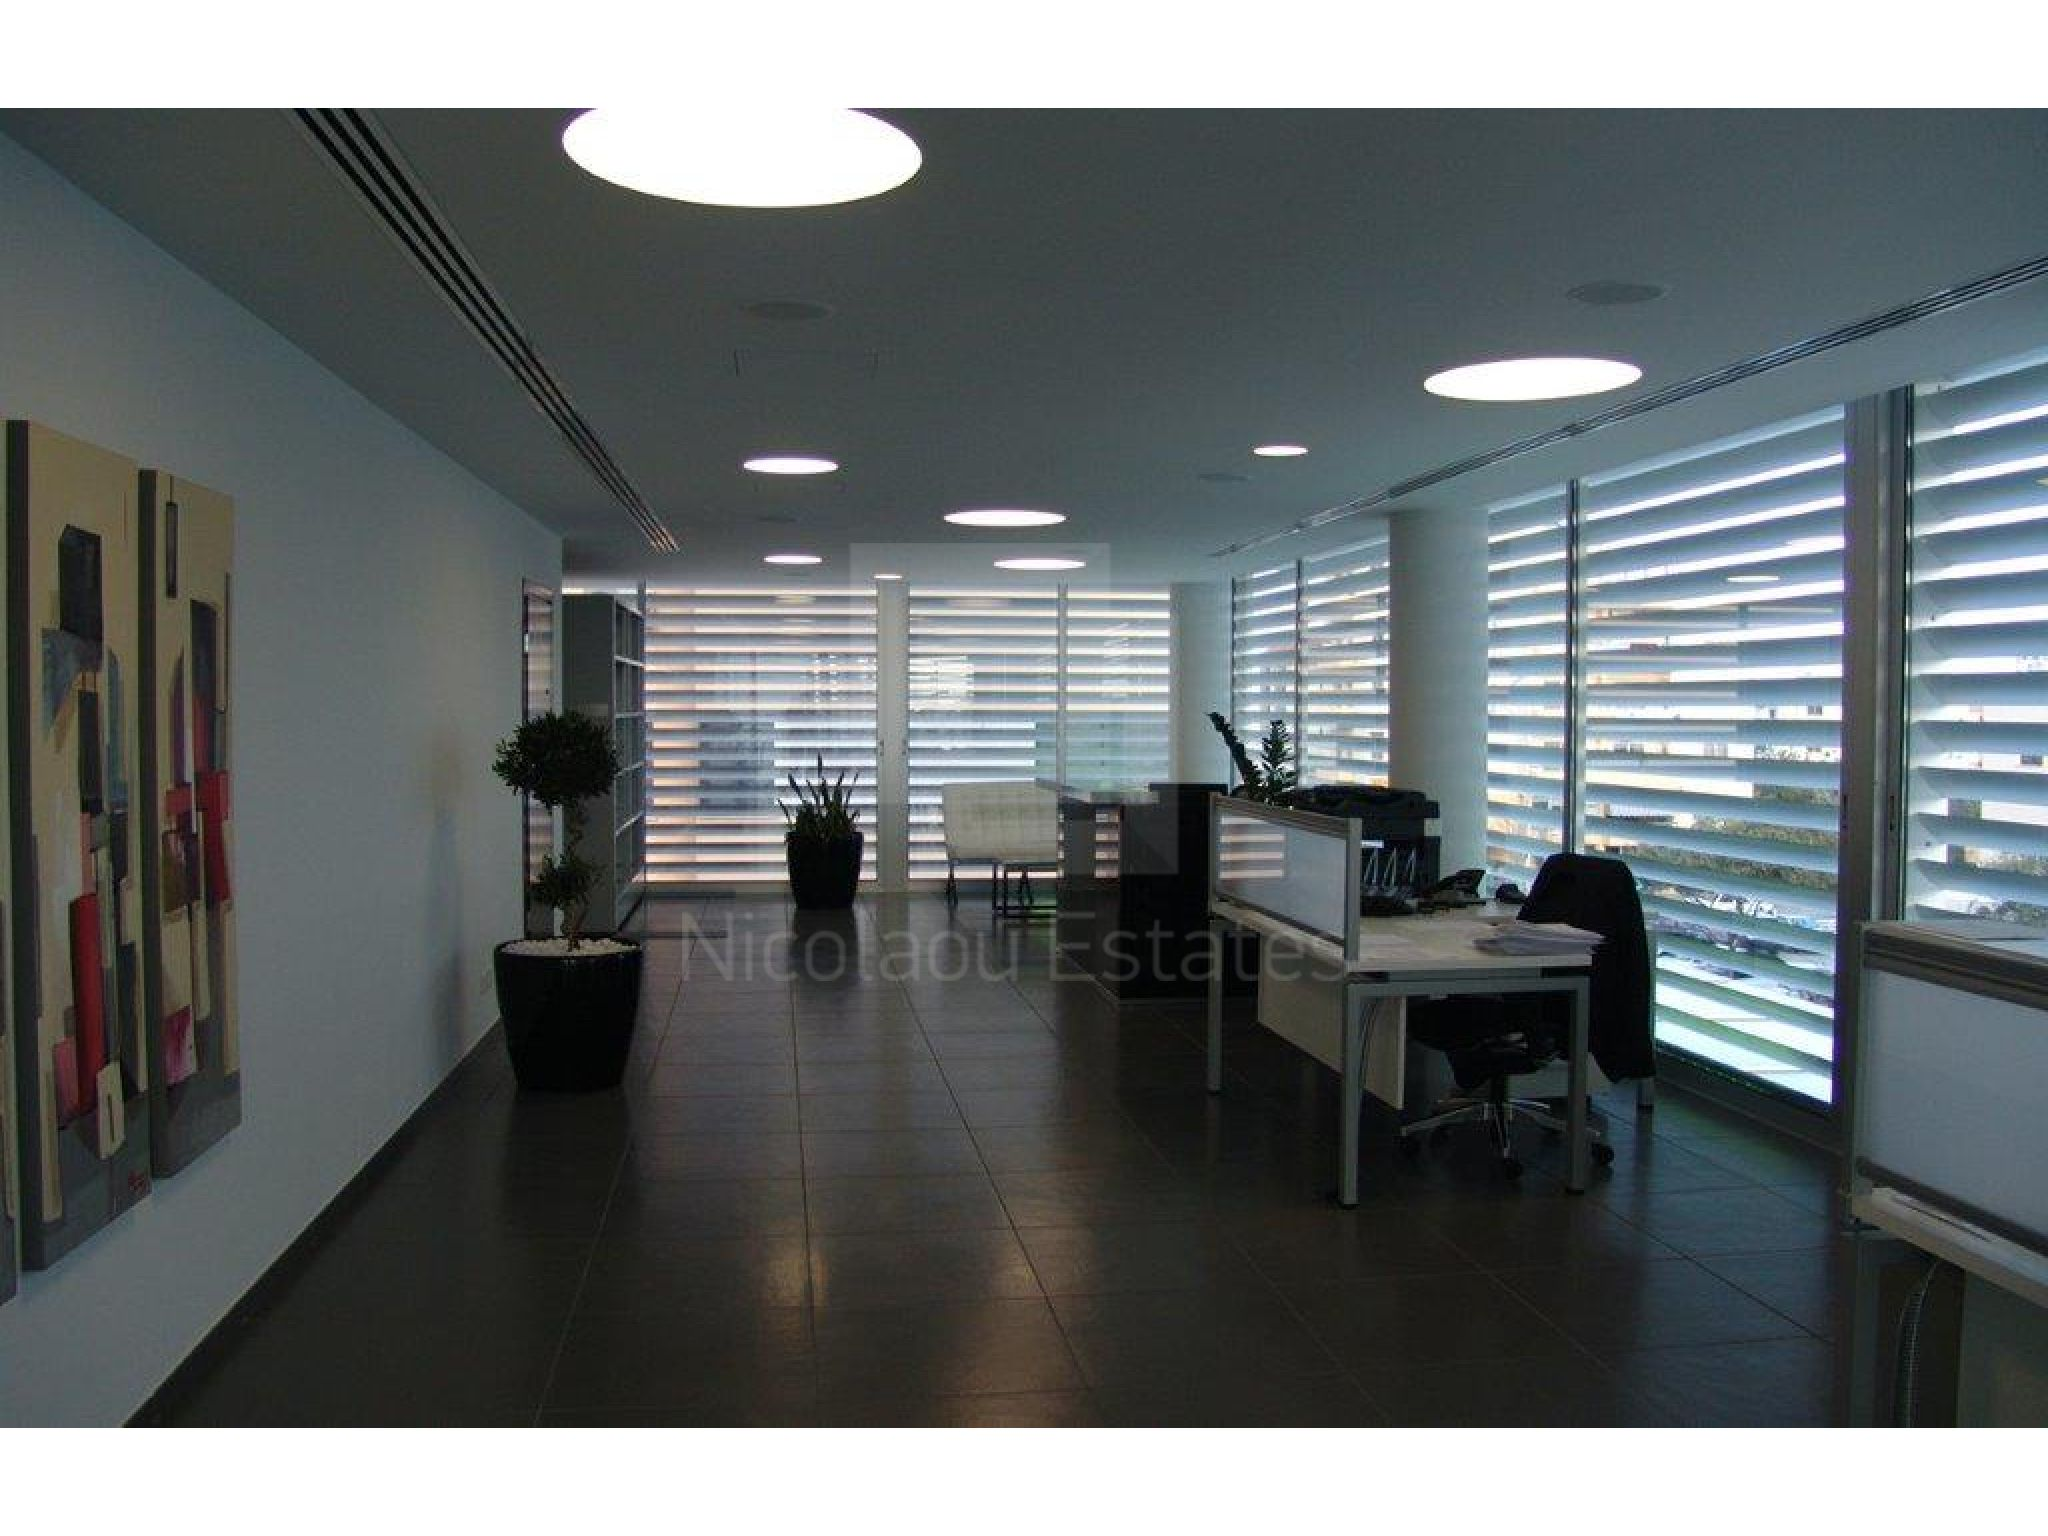 Archived Rent Luxury Office Space In Spyrou Kyprianou Close To Agias Filaxeos Area In Limassol Eur 3 650